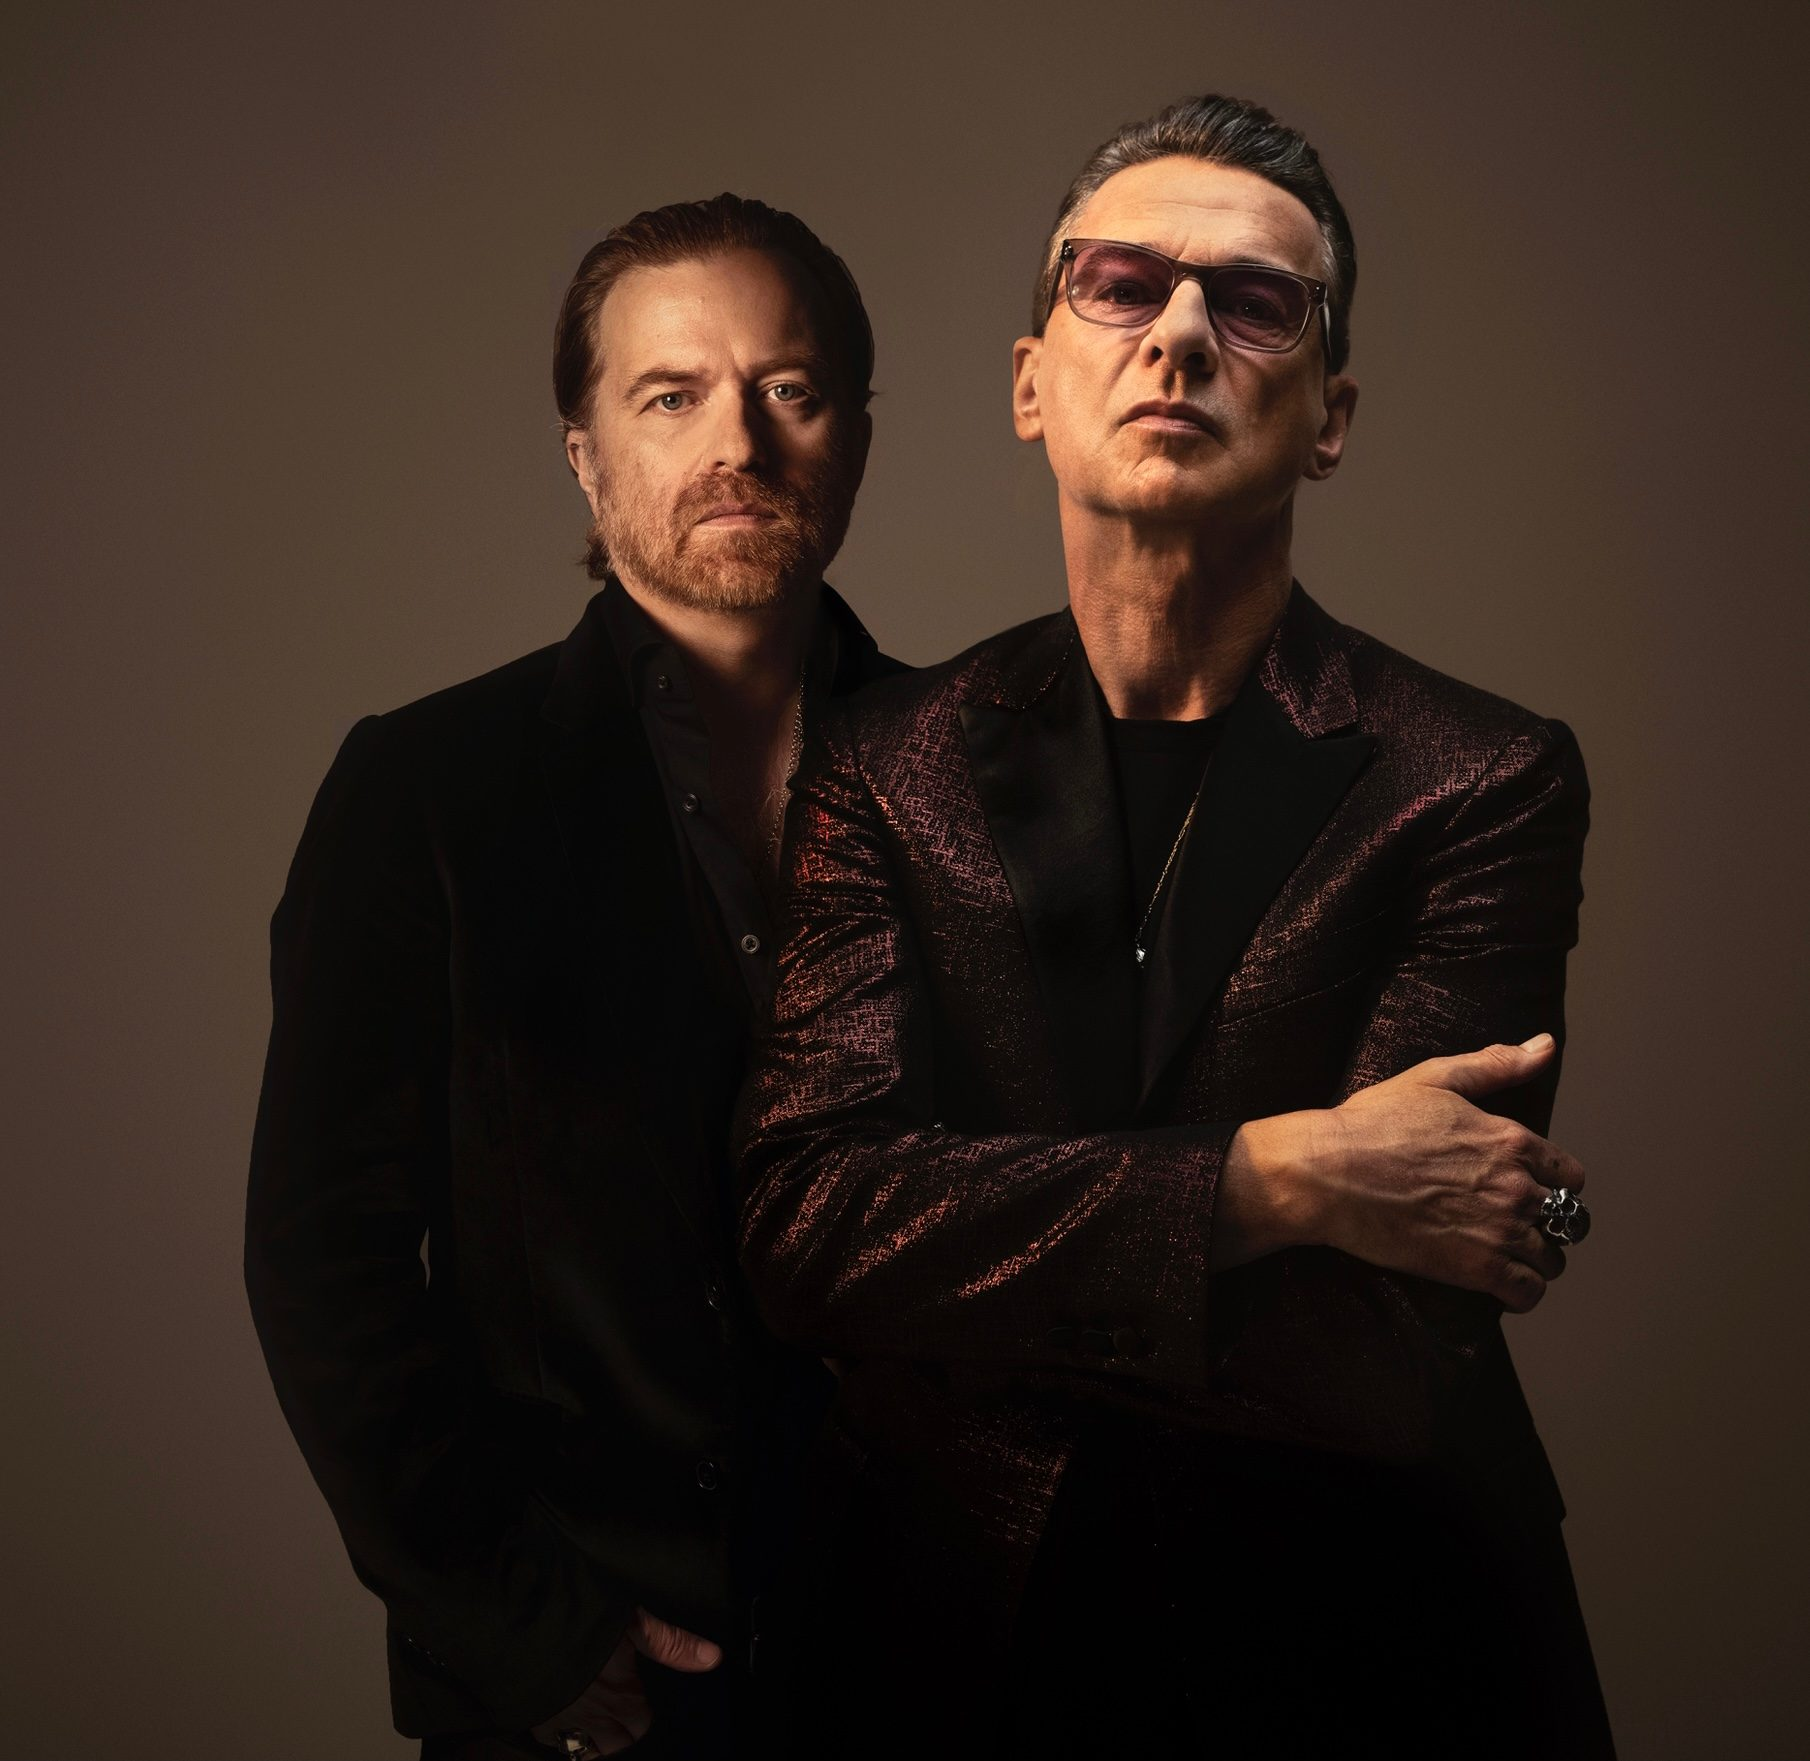 """Dave Gahan & Soulsavers Share Sentimental New Track """"The Dark End Of The Street"""""""